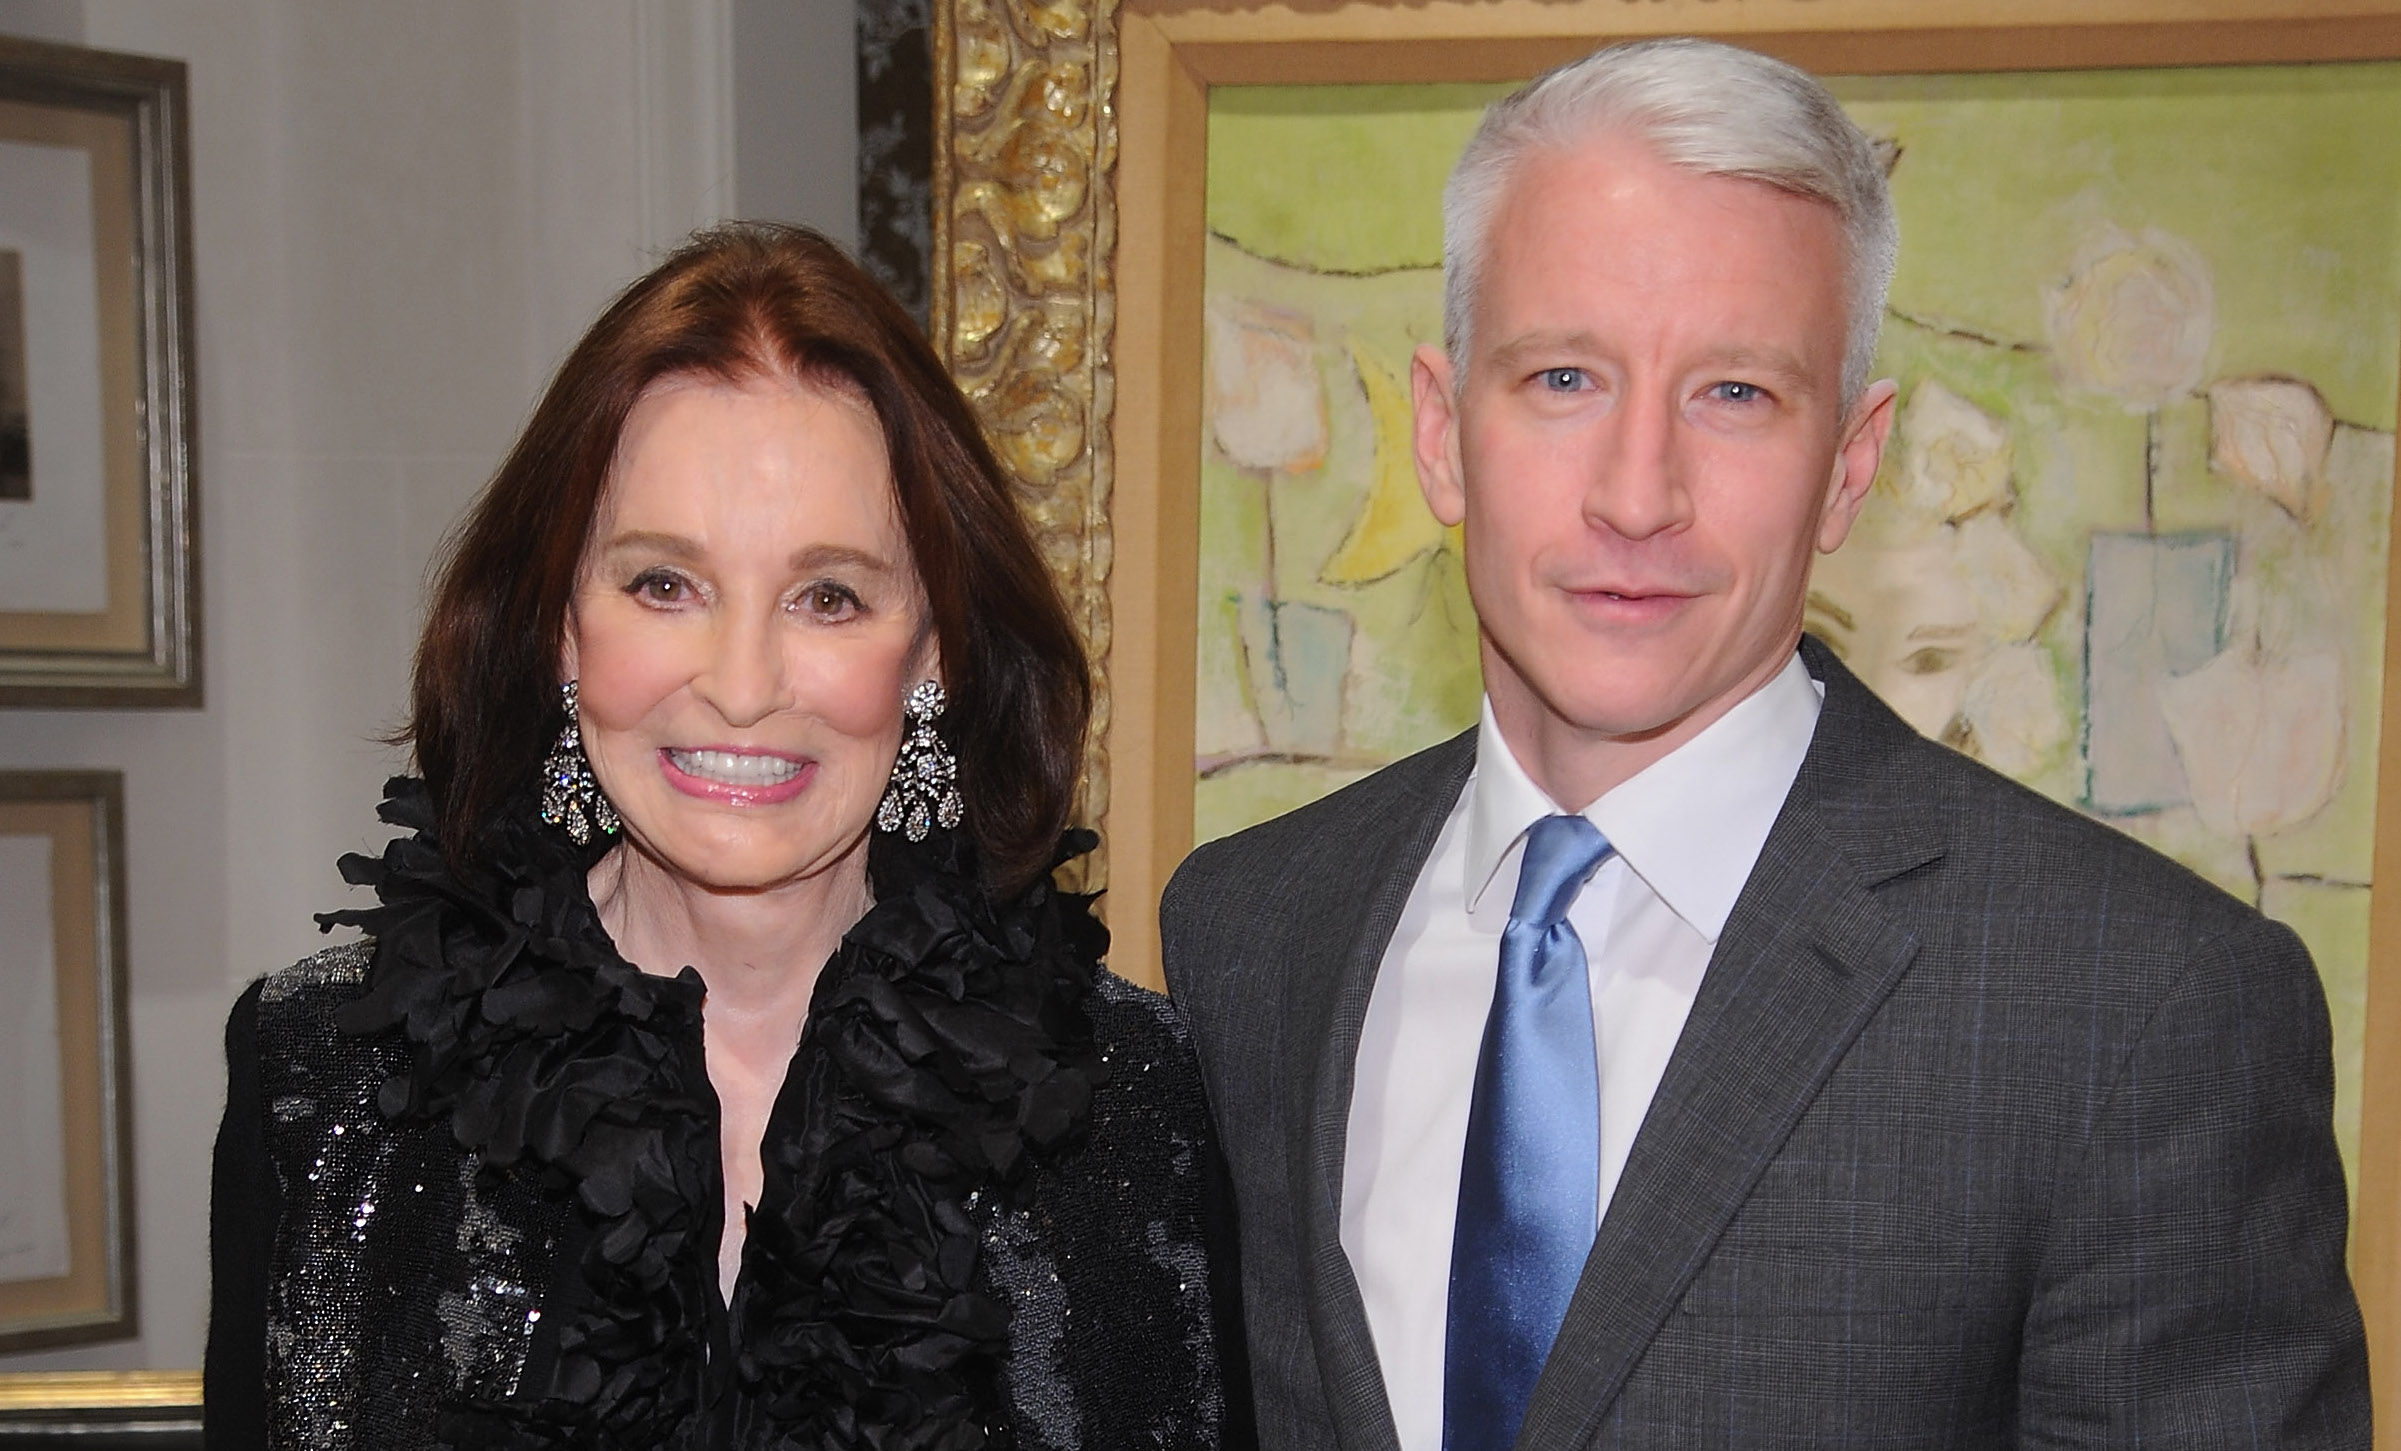 Nyc apartment cooper and vanderbilt at carter s funeral service above - Anderson Cooper And Gloria Vanderbilt The Rainbow Comes And Goes Diane Rehm